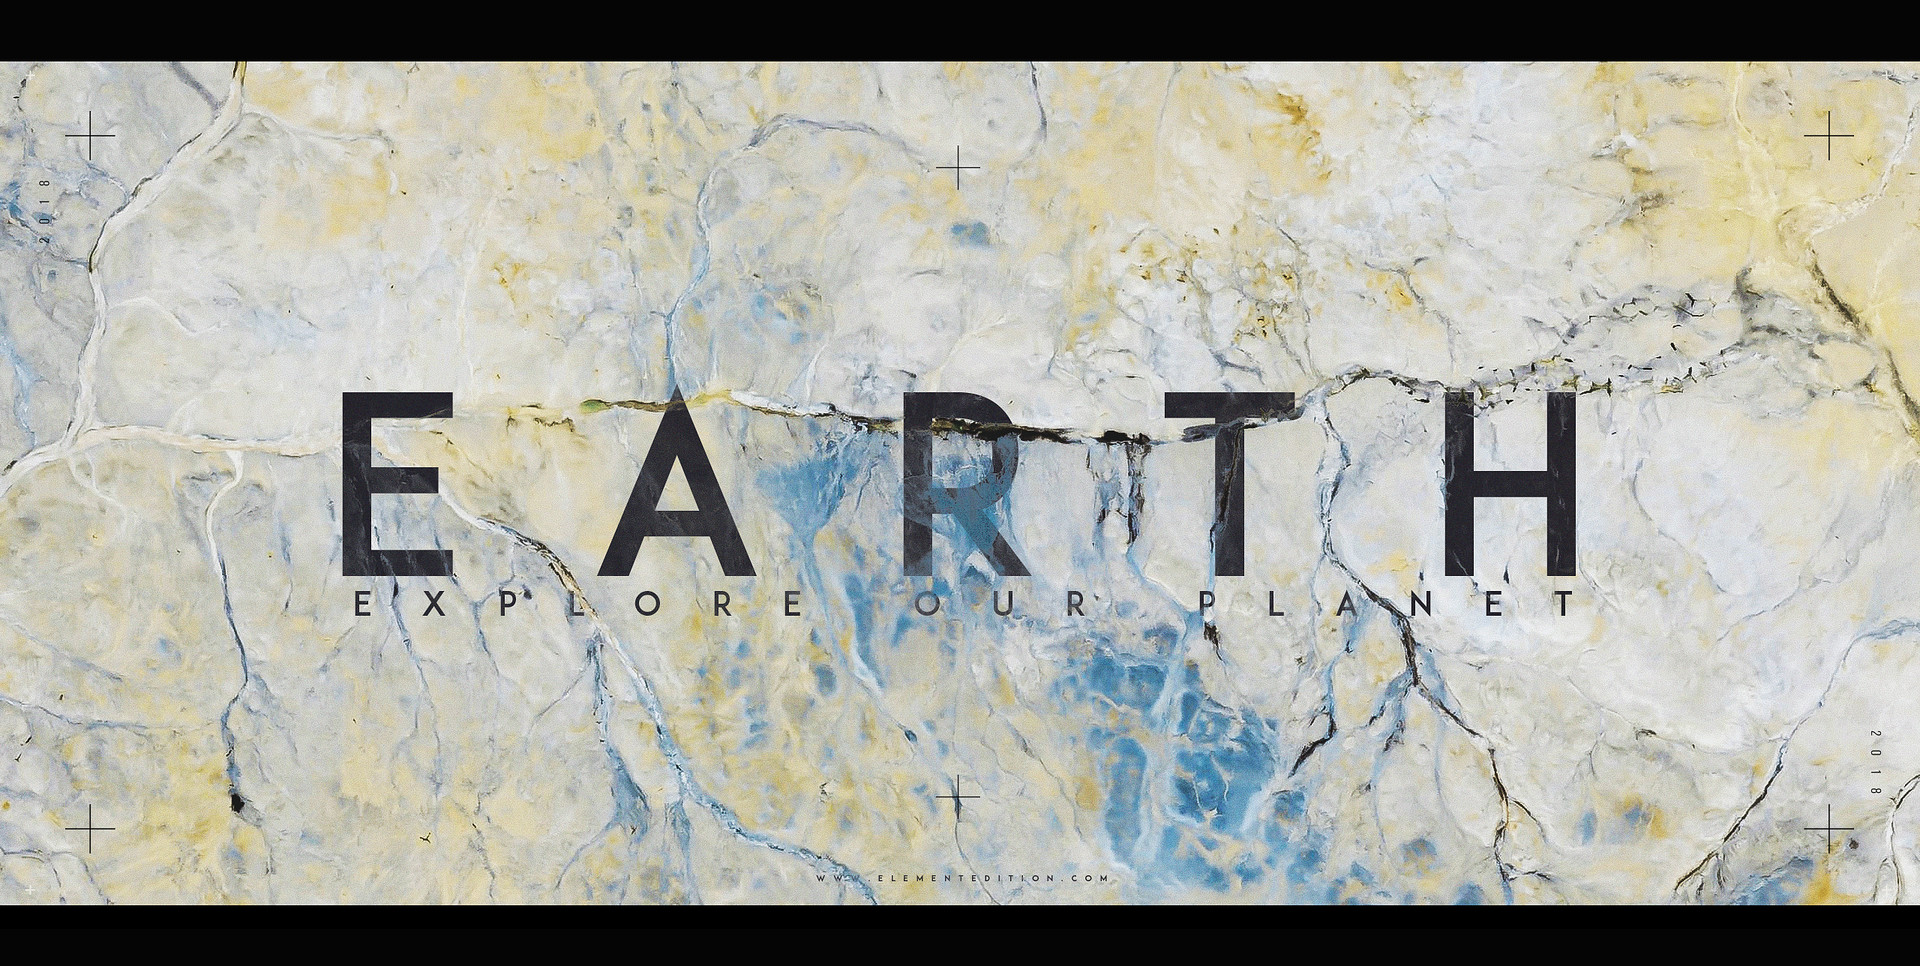 I called it: the artists planet